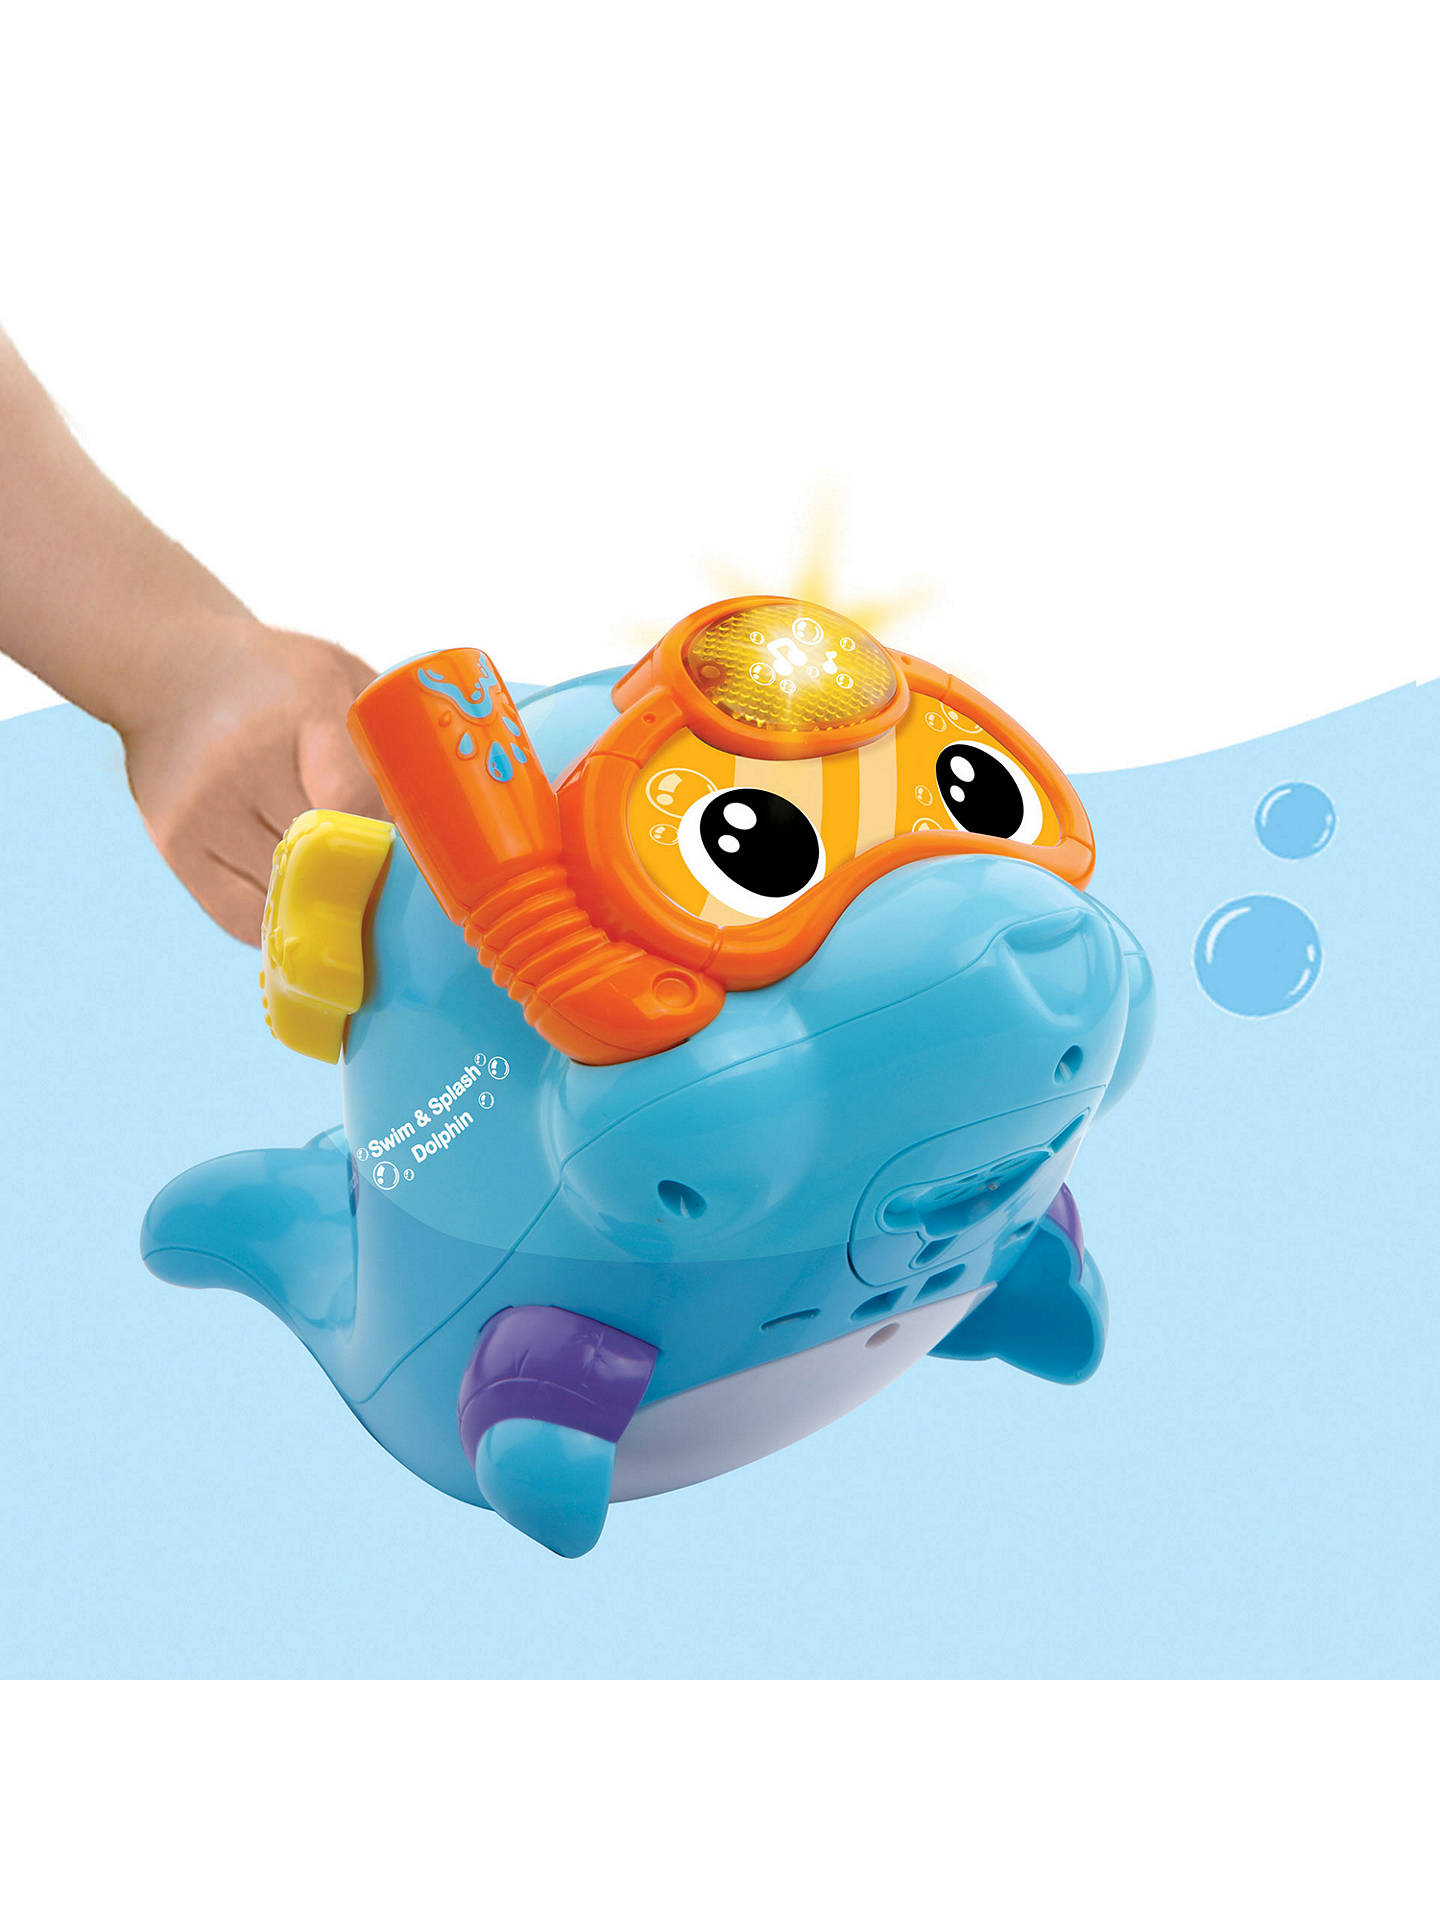 VTech Sing and Splash Fish Bath Toy Play Fun Clean Learning With Sounds